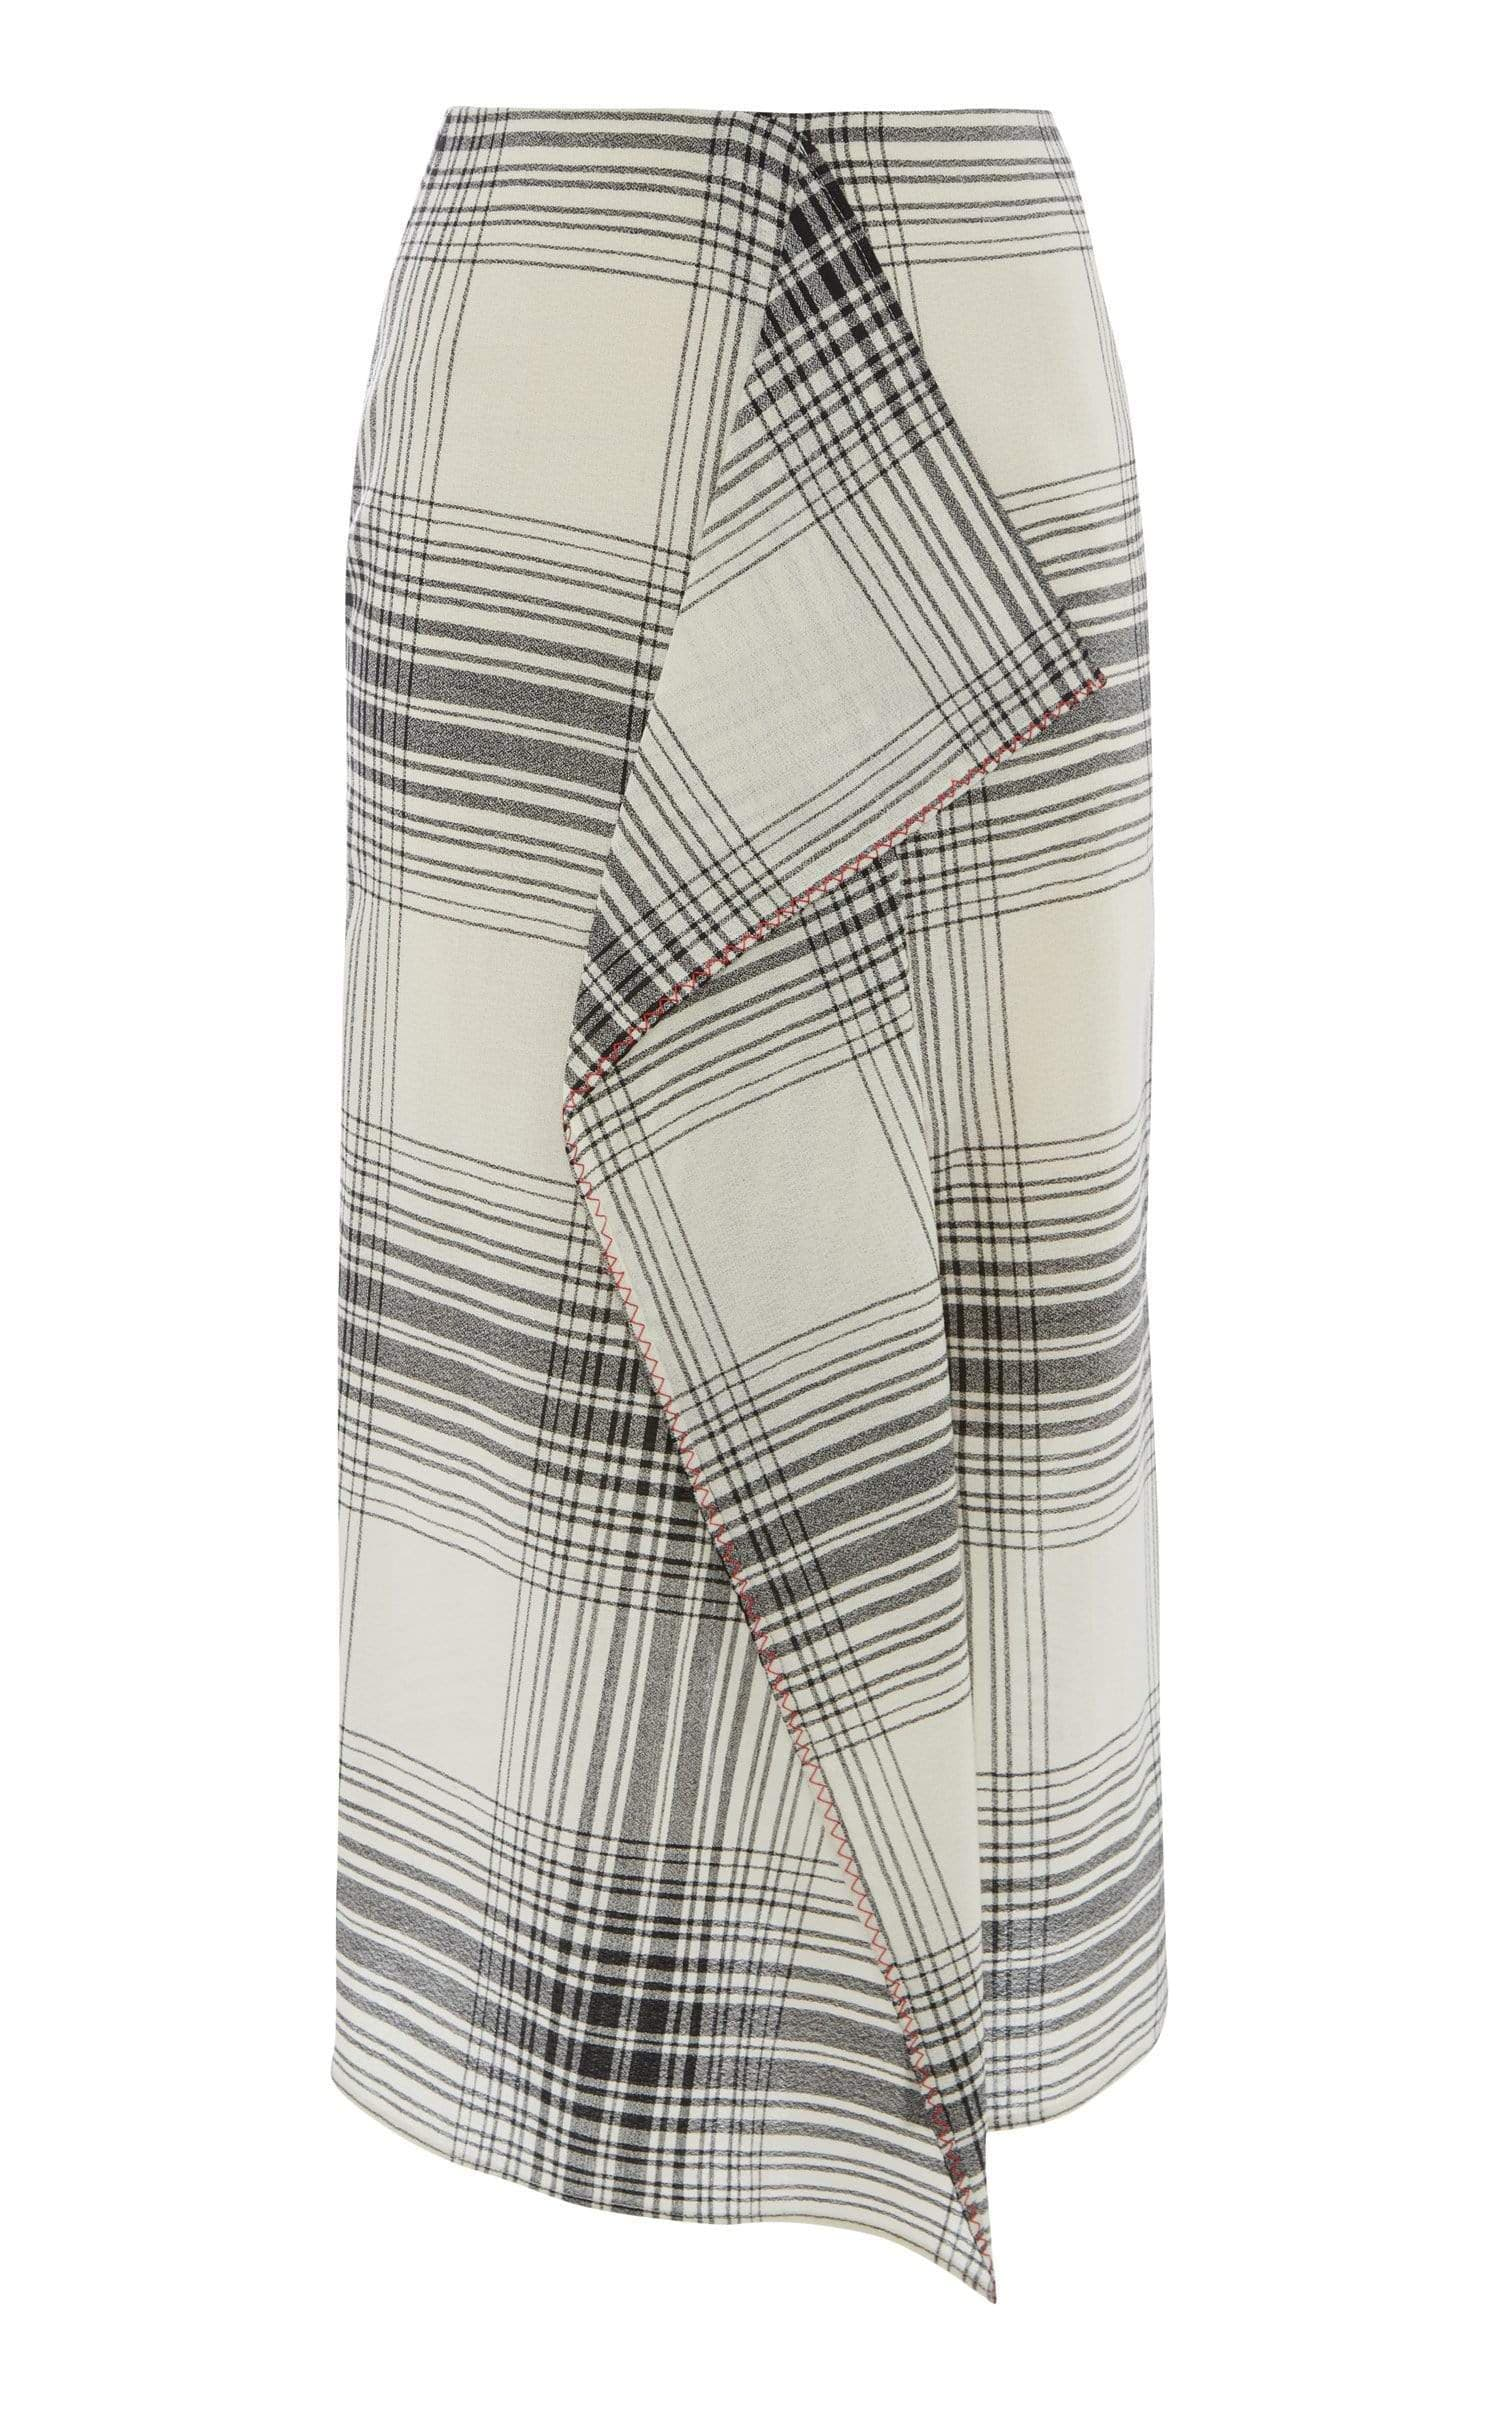 Casha Skirt In Monochrome from Roland Mouret